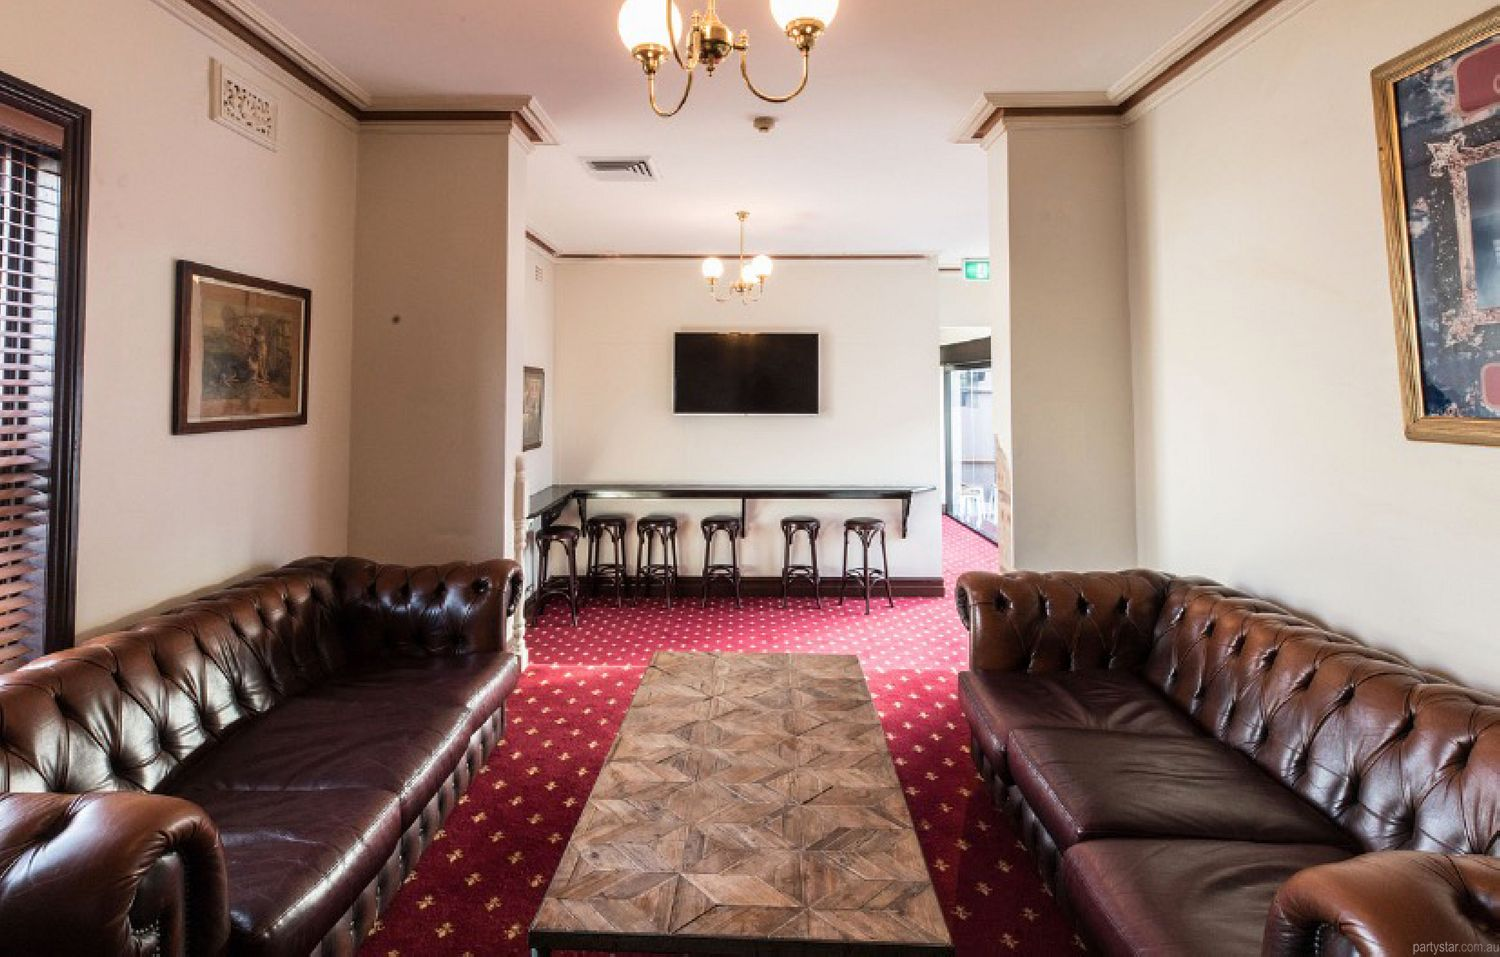 Botany View Hotel, Newtown, NSW. Function Room hire photo #4